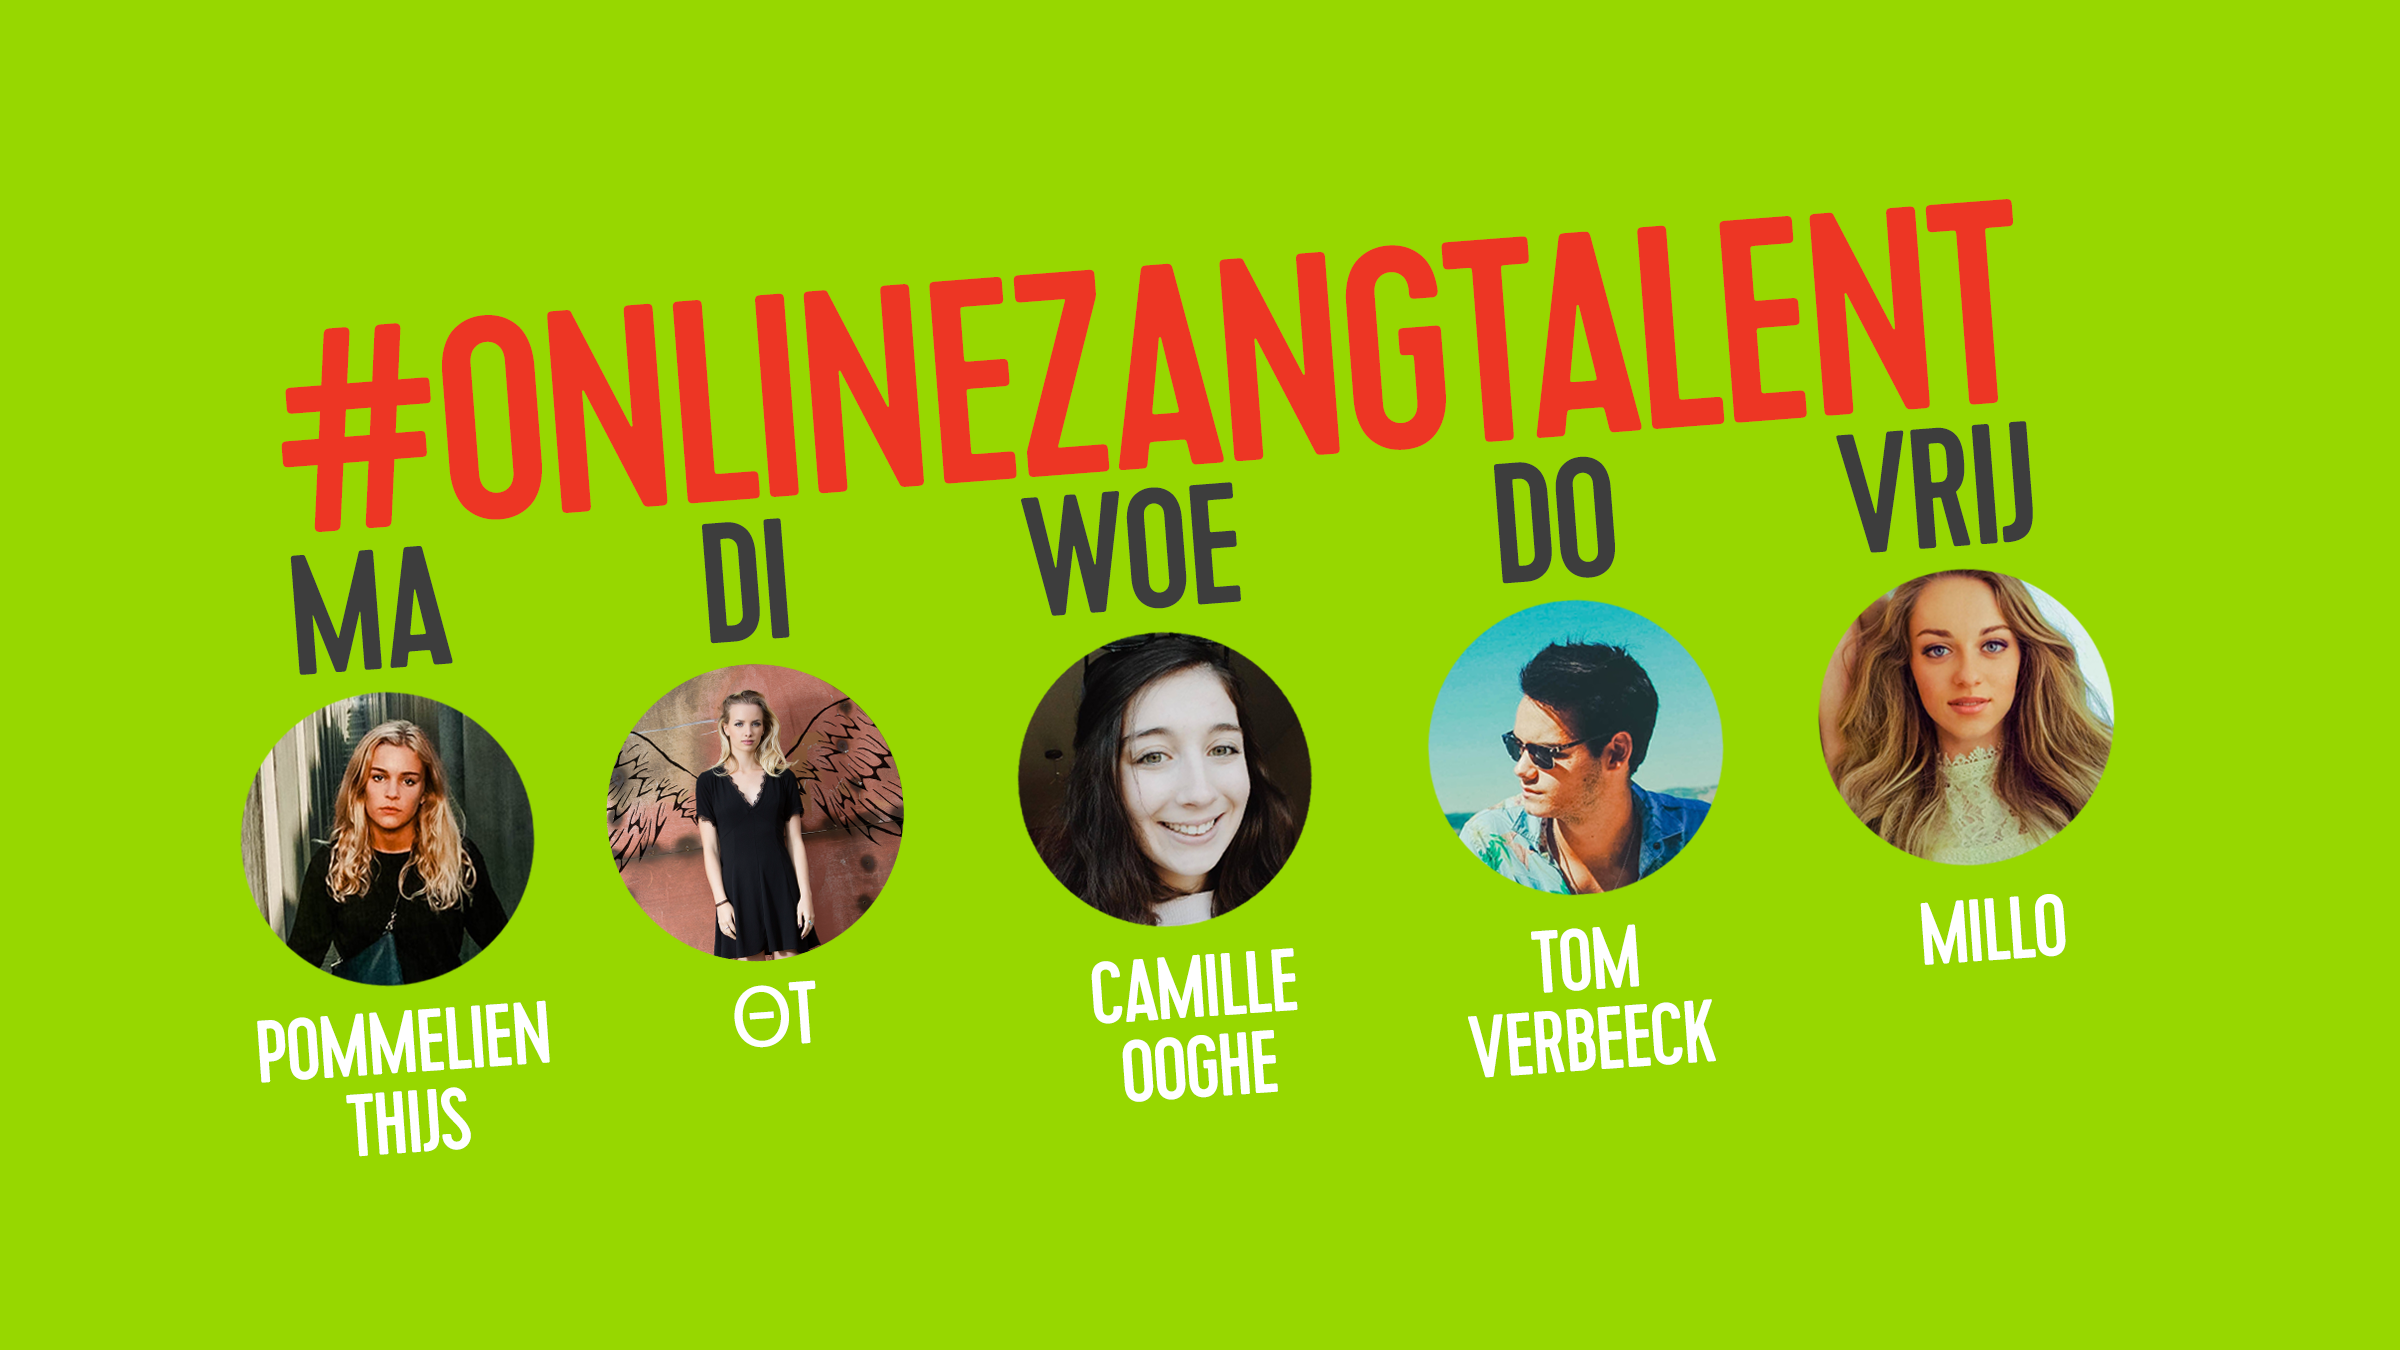 Online zangtalent april